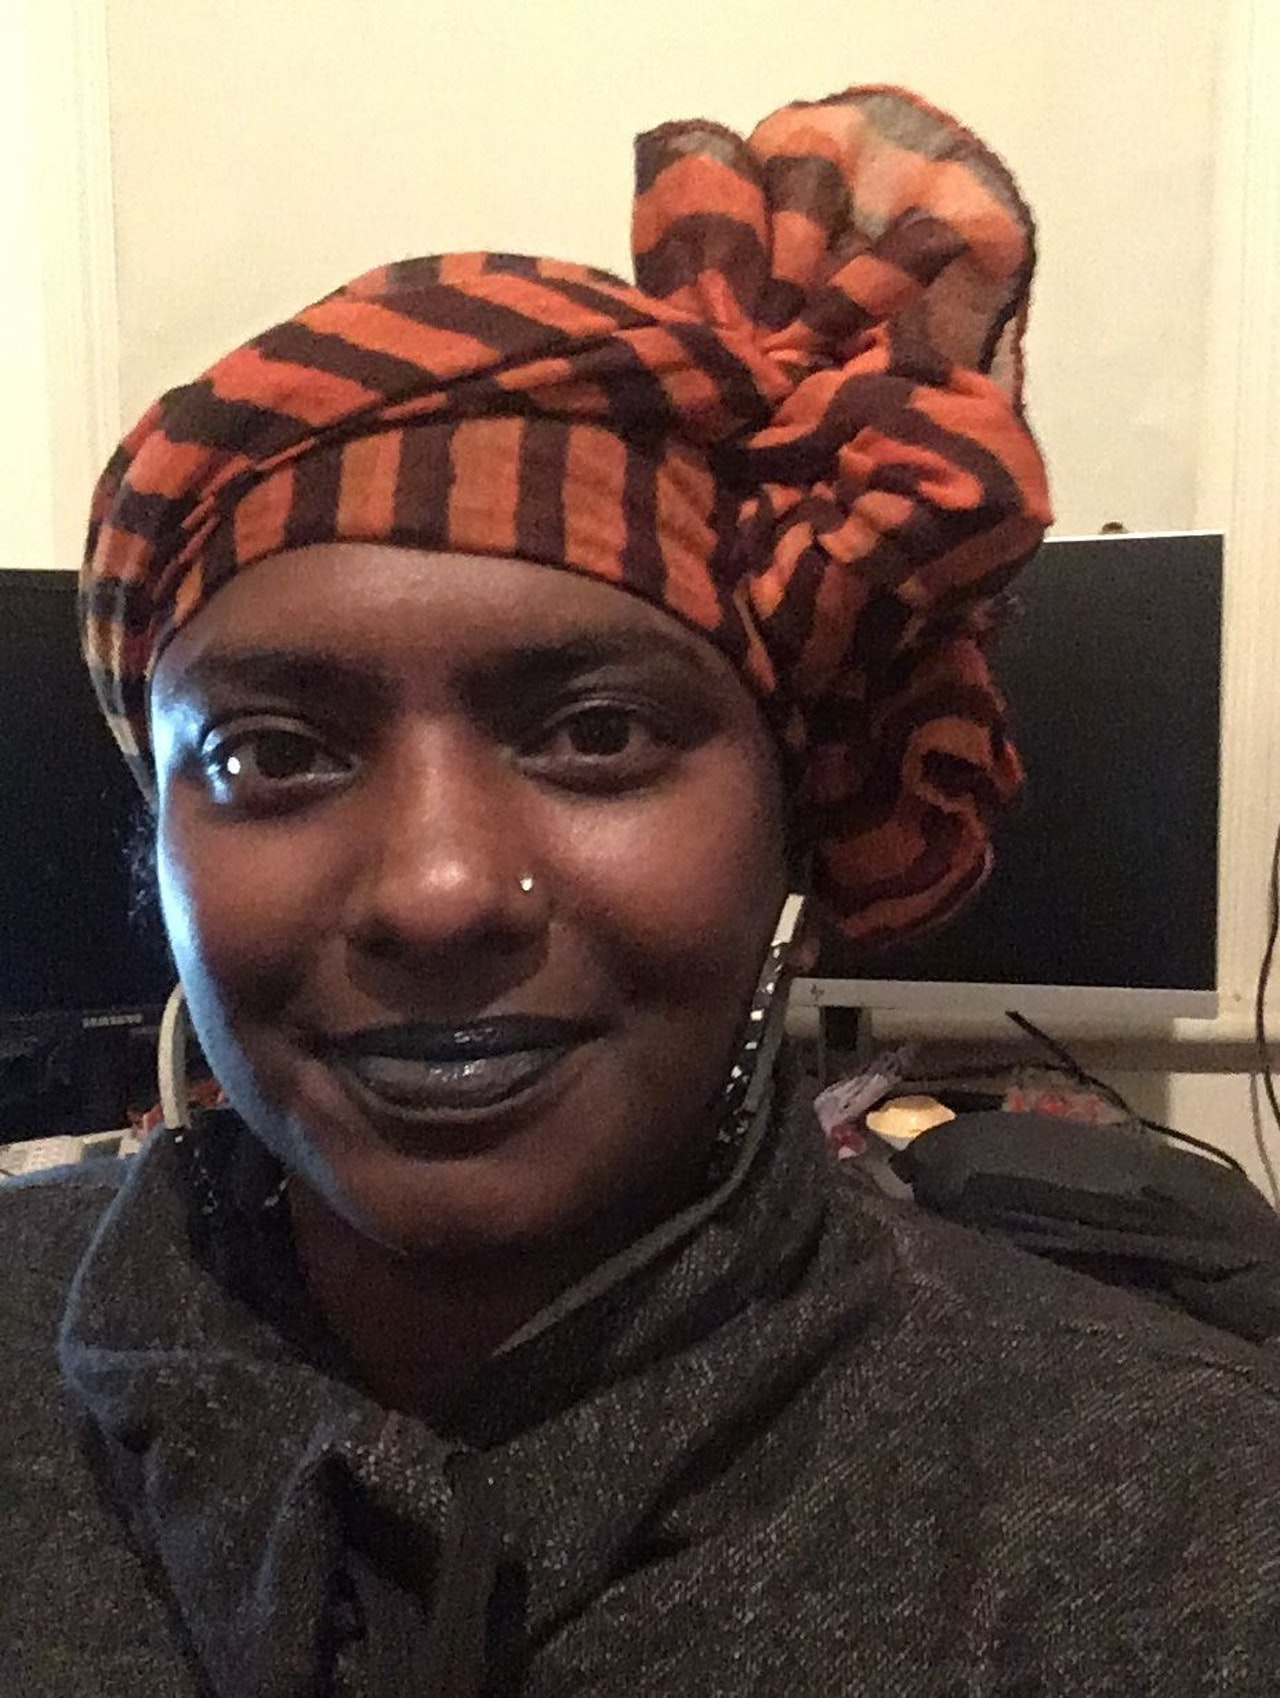 Photo attached description; woman smiling at the camera.  She has brown skin, wears a dark top and large hoop earrings; and an orange striped scarf is wrapped around her head.